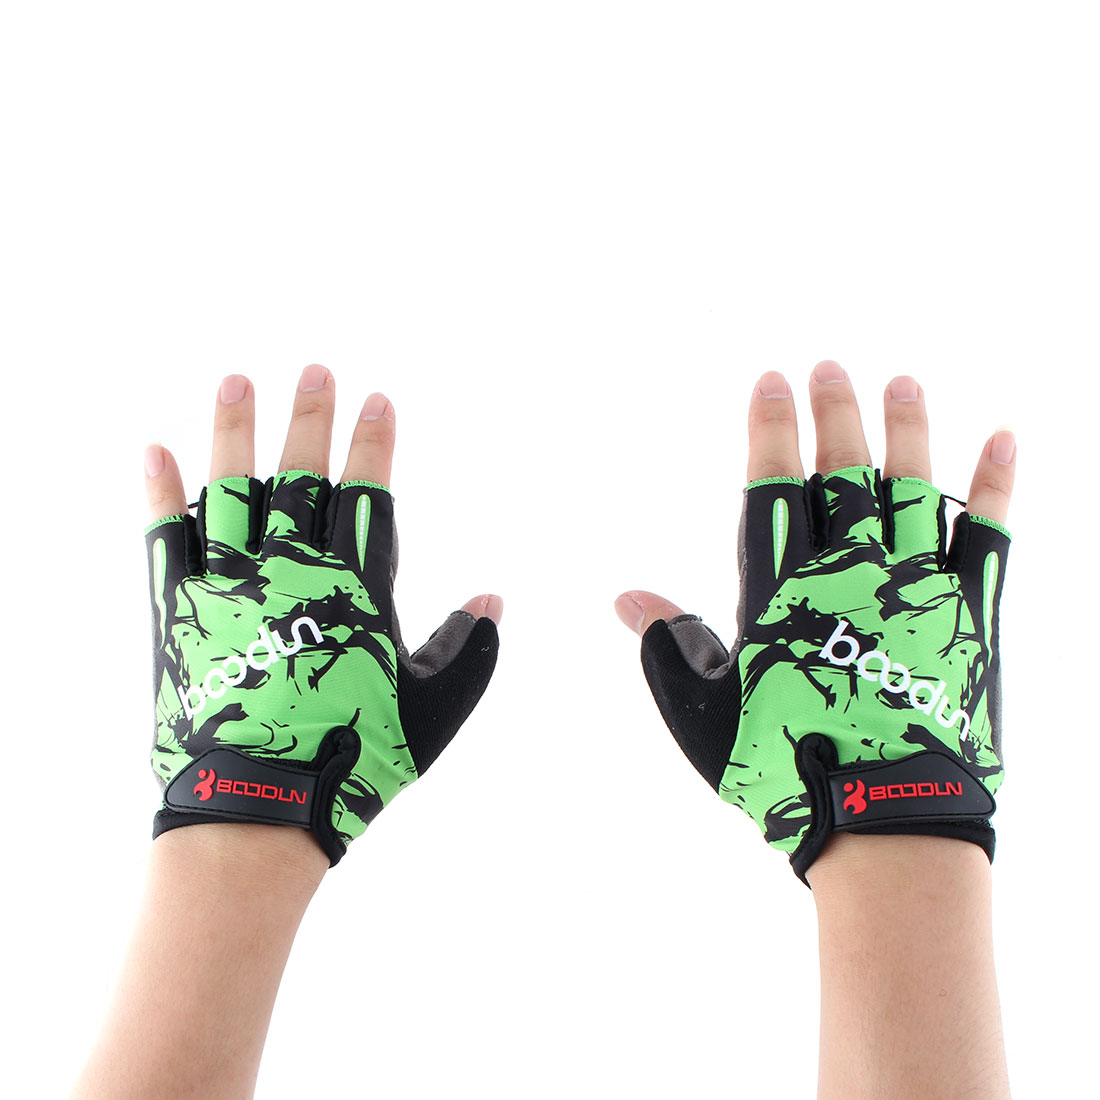 BOODUN Authorized Polyester Exercise Sports Gym Lifting Training Bodybuilding Protector Half Finger Fitness Gloves Green M Pair